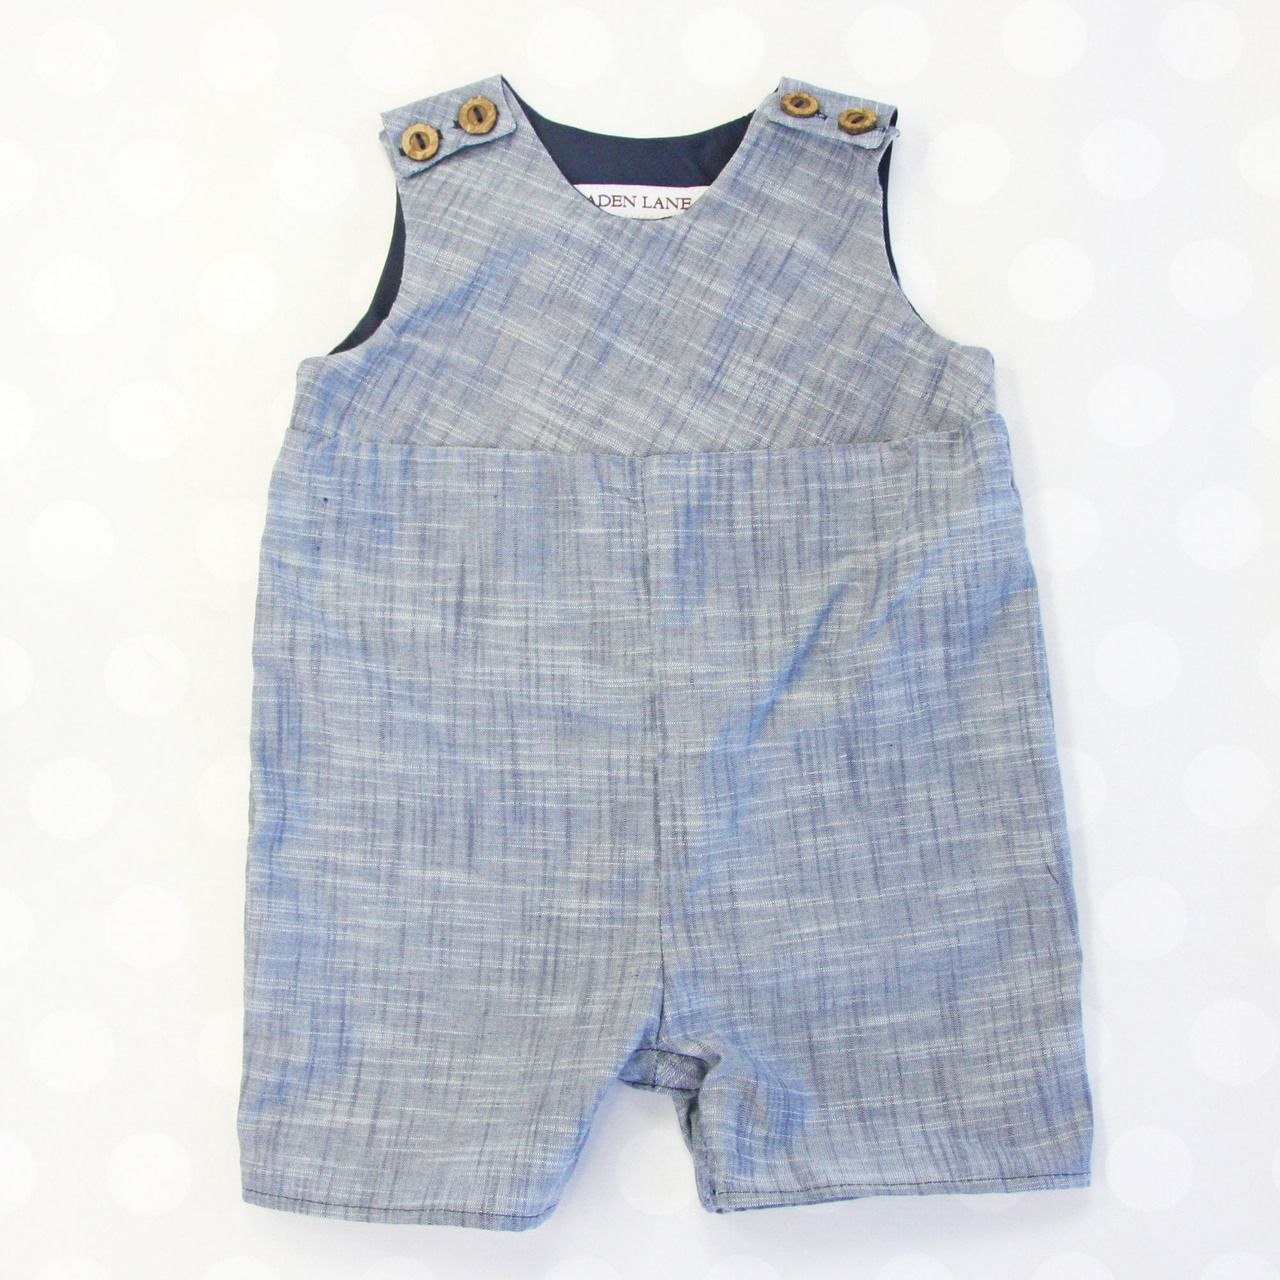 71e69e326c2f This little boy s chambray romper is simple and classic in a way ...